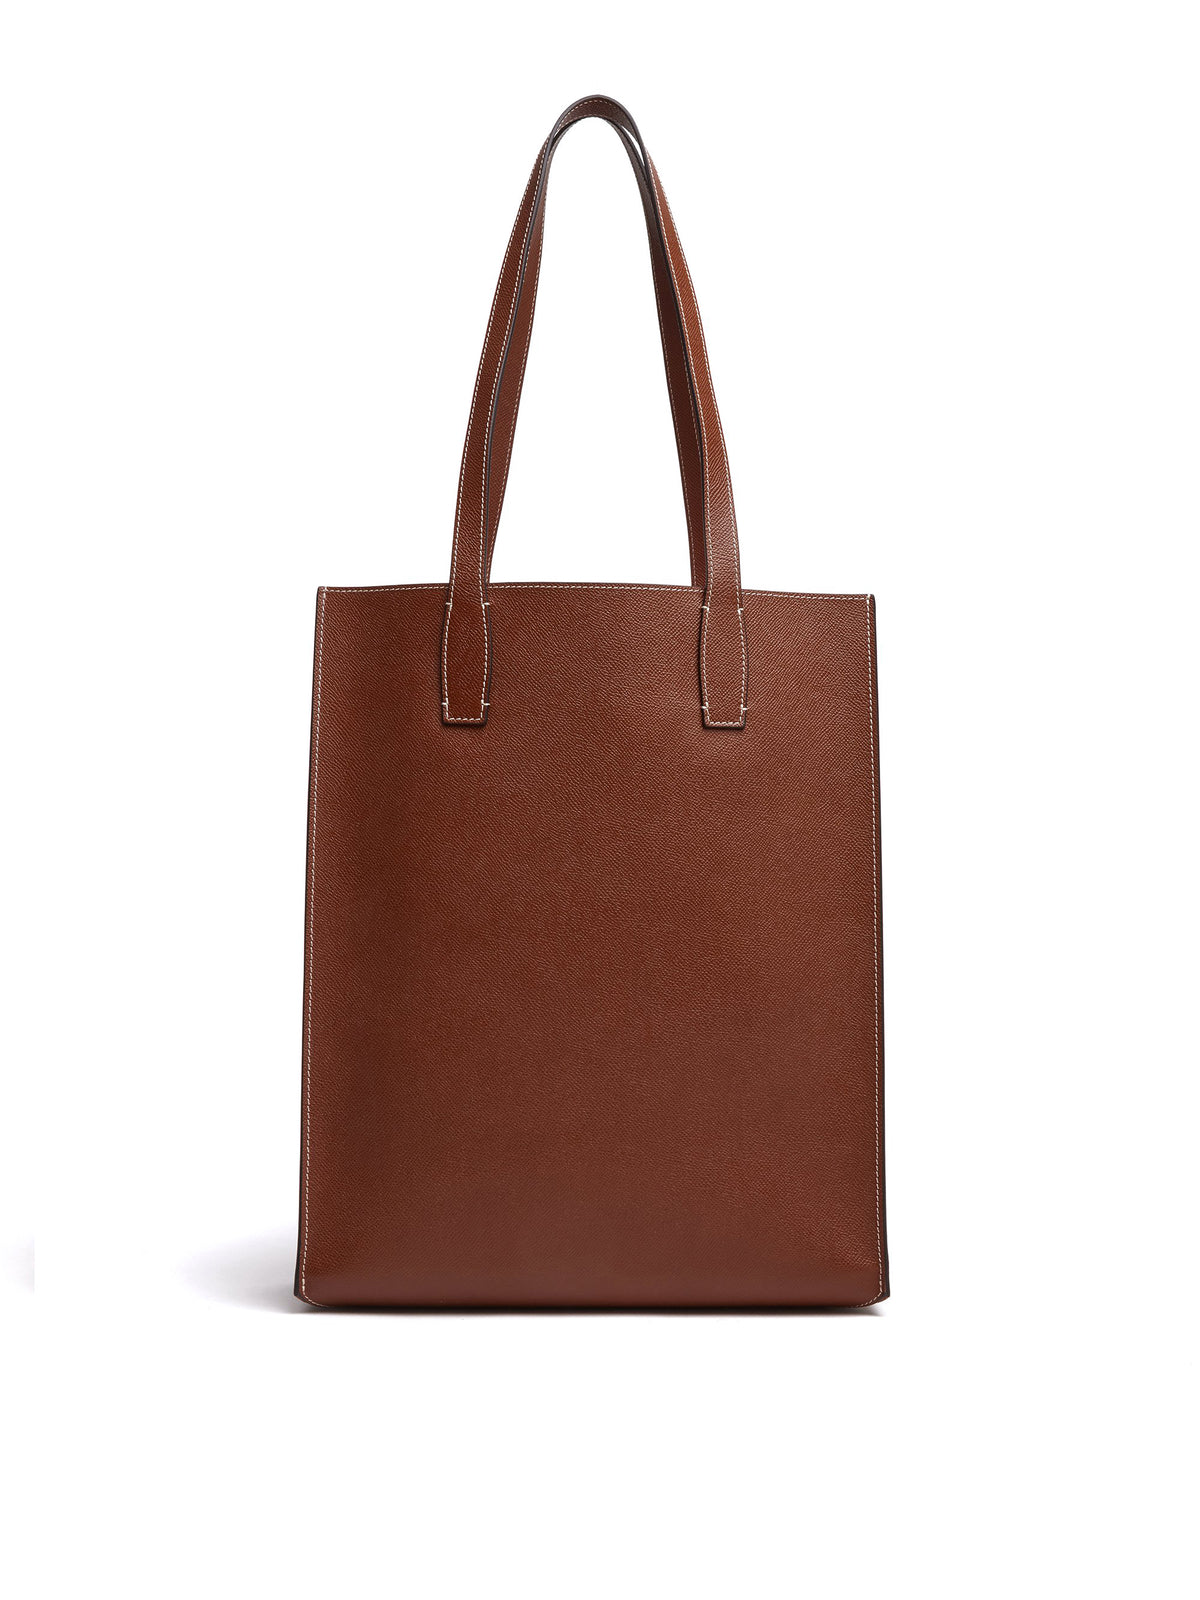 Mark Cross Fitzgerald North South Leather Tote Saffiano Acorn Back